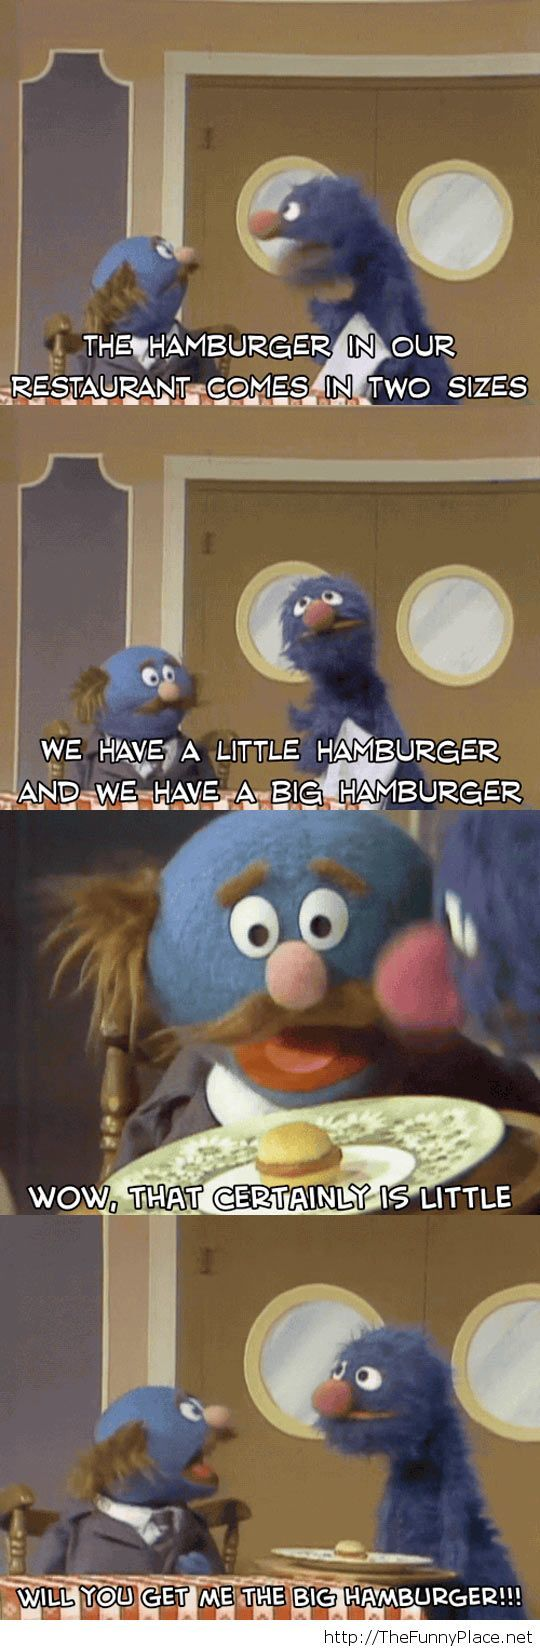 Two sizes for hamburgers